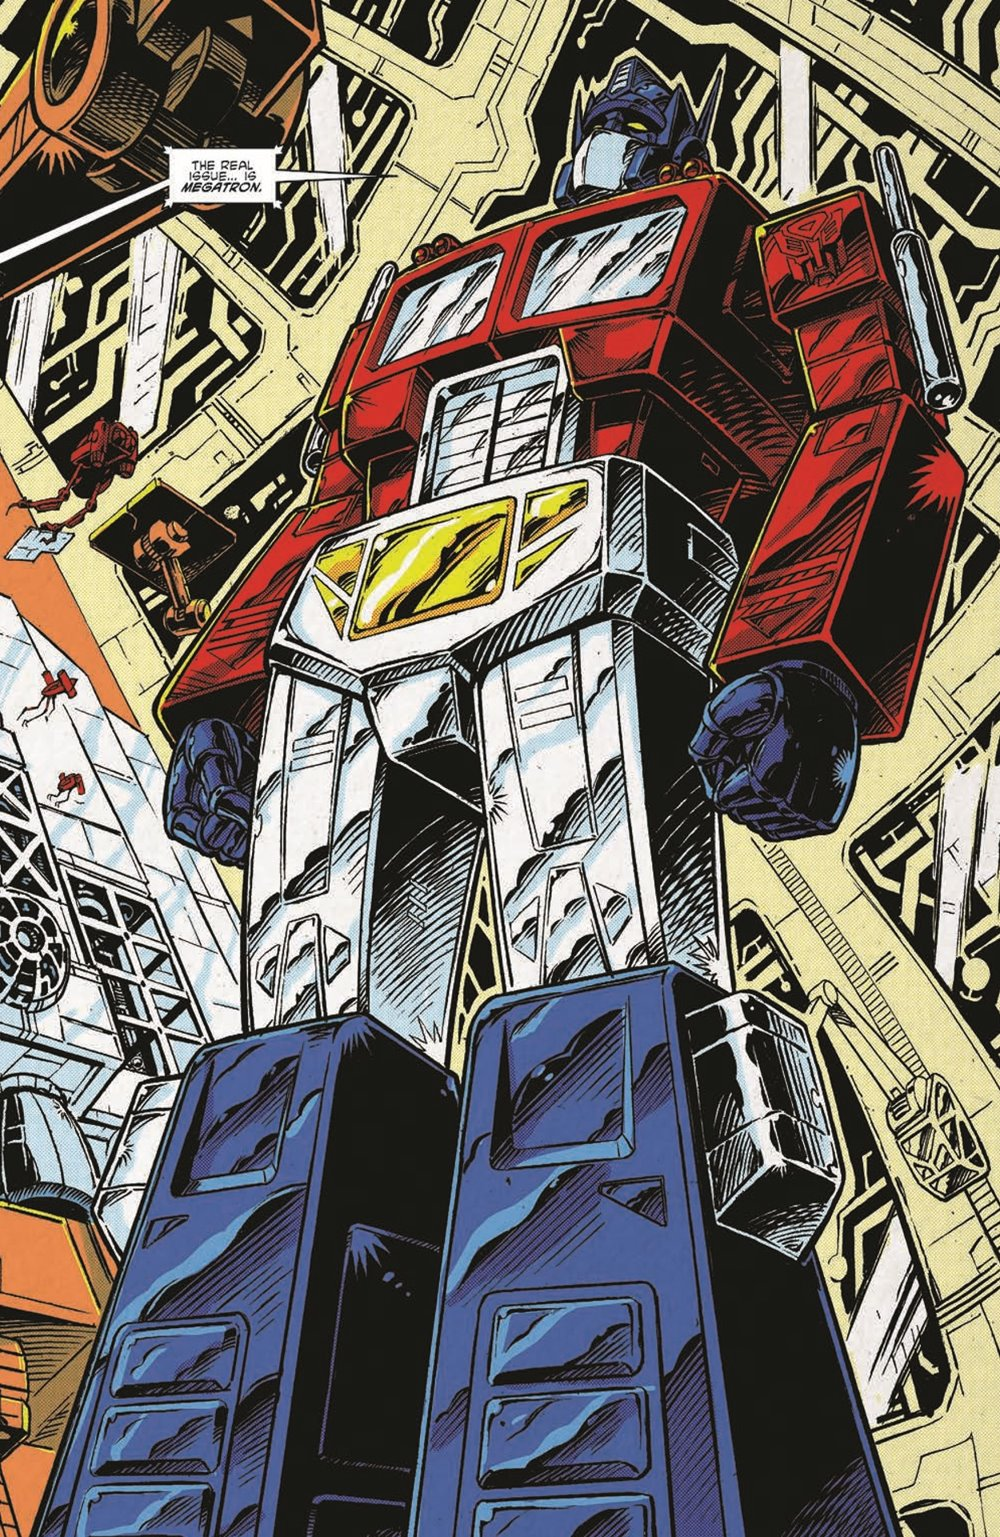 TF84_Secrets_Lies_TPB_pr-6 ComicList Previews: TRANSFORMERS '84 SECRETS AND LIES TP